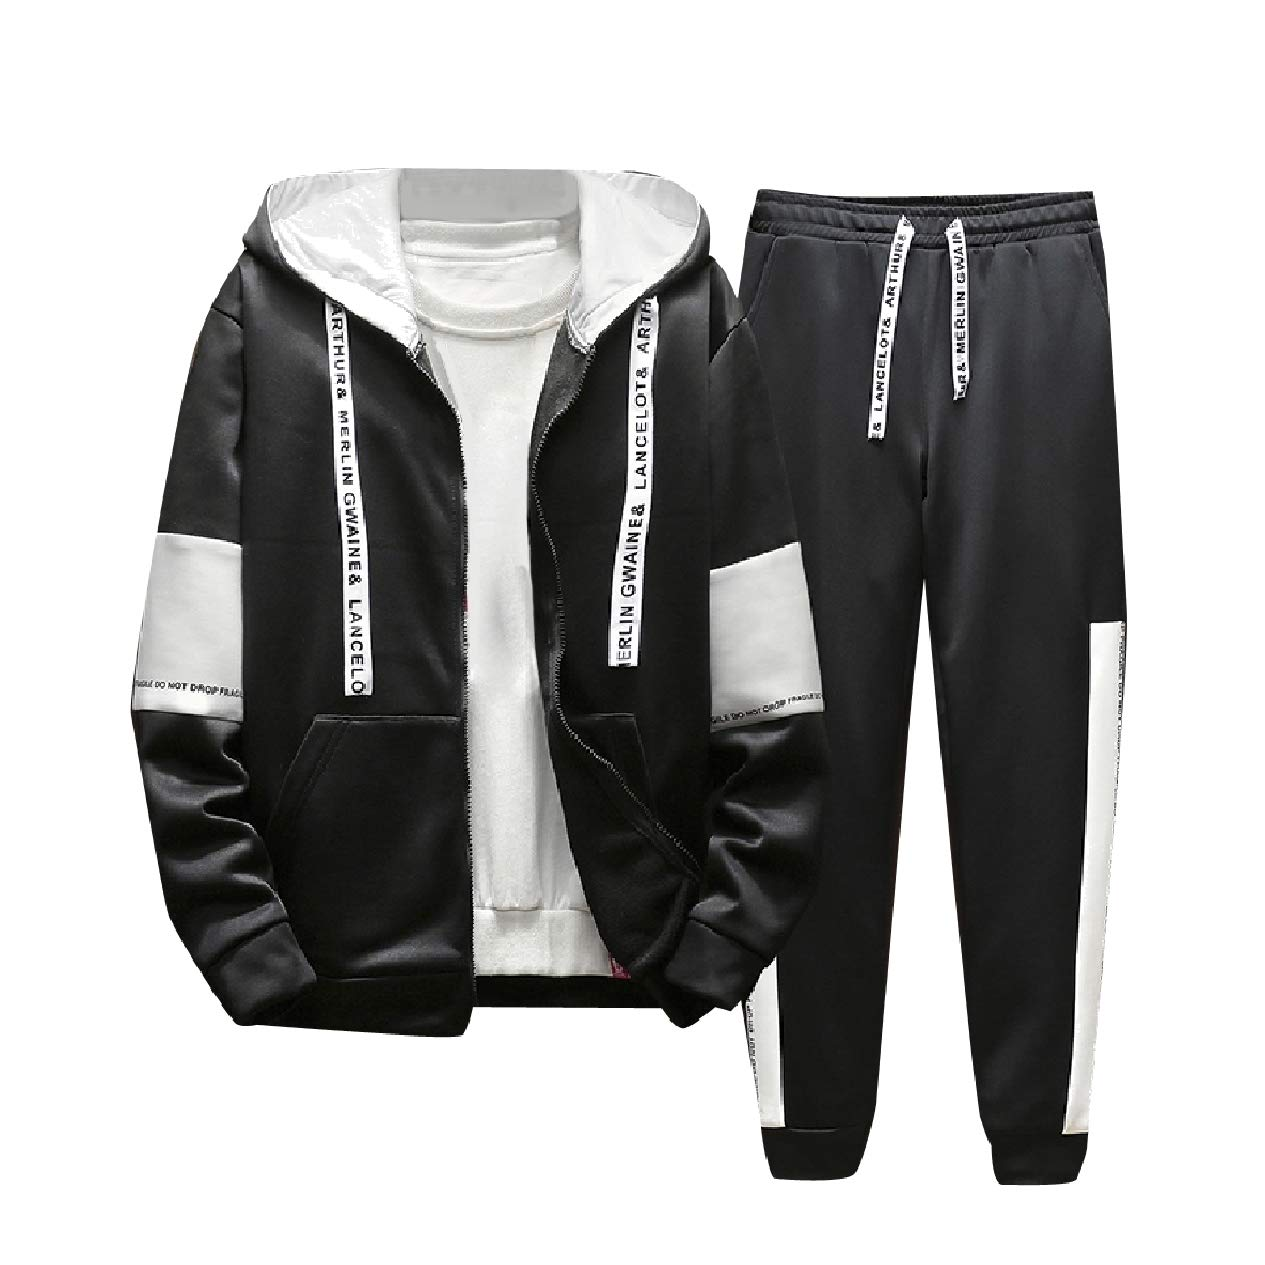 Tracksuits Tootca Womens Big Pocket Sports Color Block 2 Pieces Tracksuits Outfit Sports Apparel